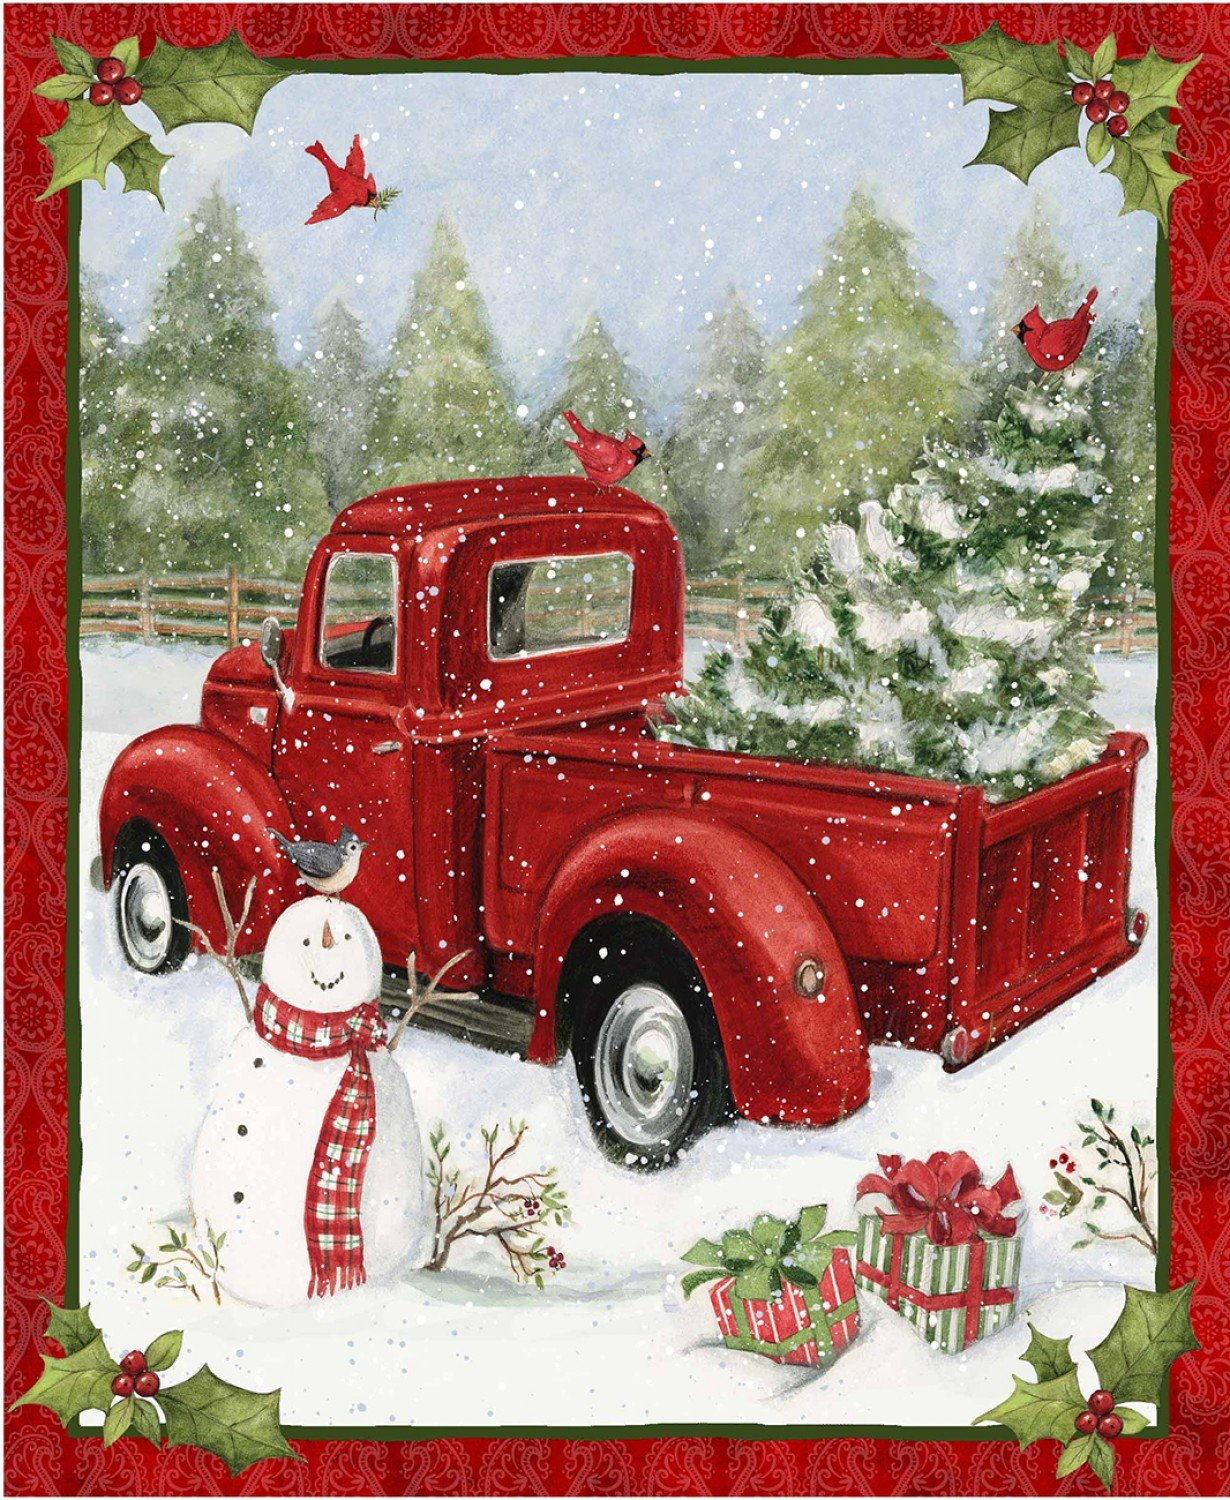 Christmas Red Truck Christmas Fun panel by Susan Winget for Springs Creative Collection 69167D650715